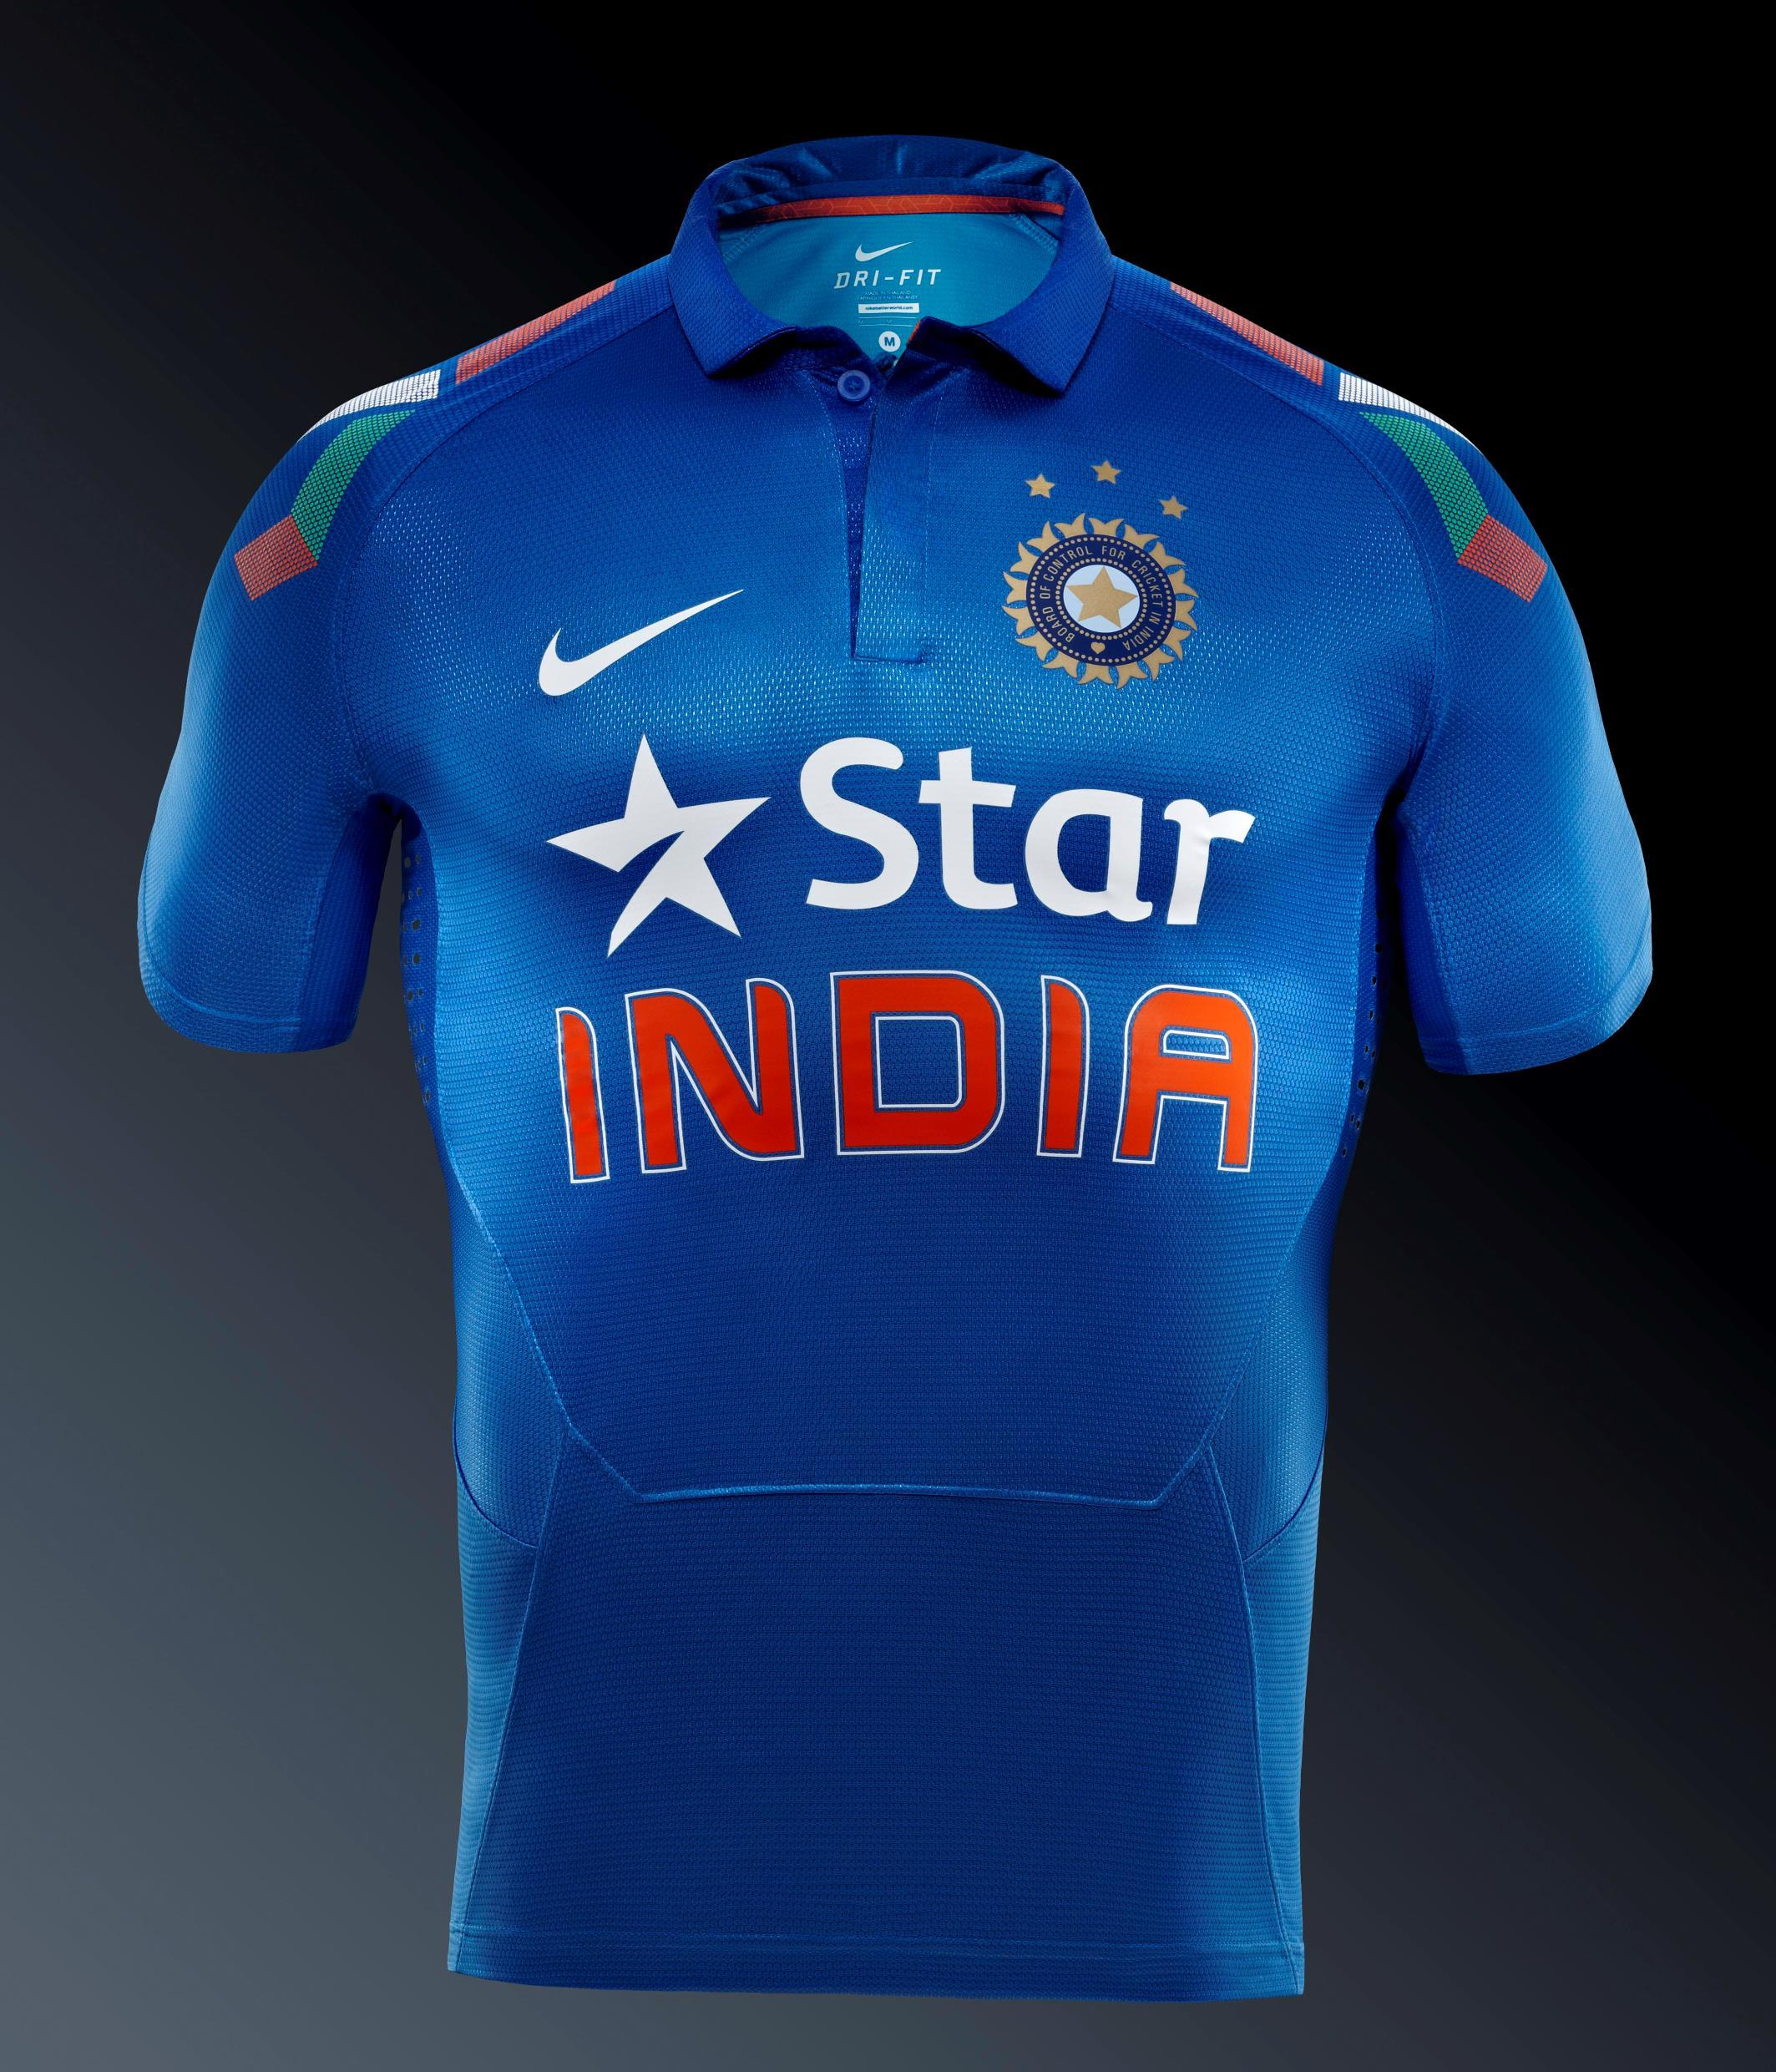 81621d093 Indian players will wear this kit for the new season. In keeping with Nike s  ...